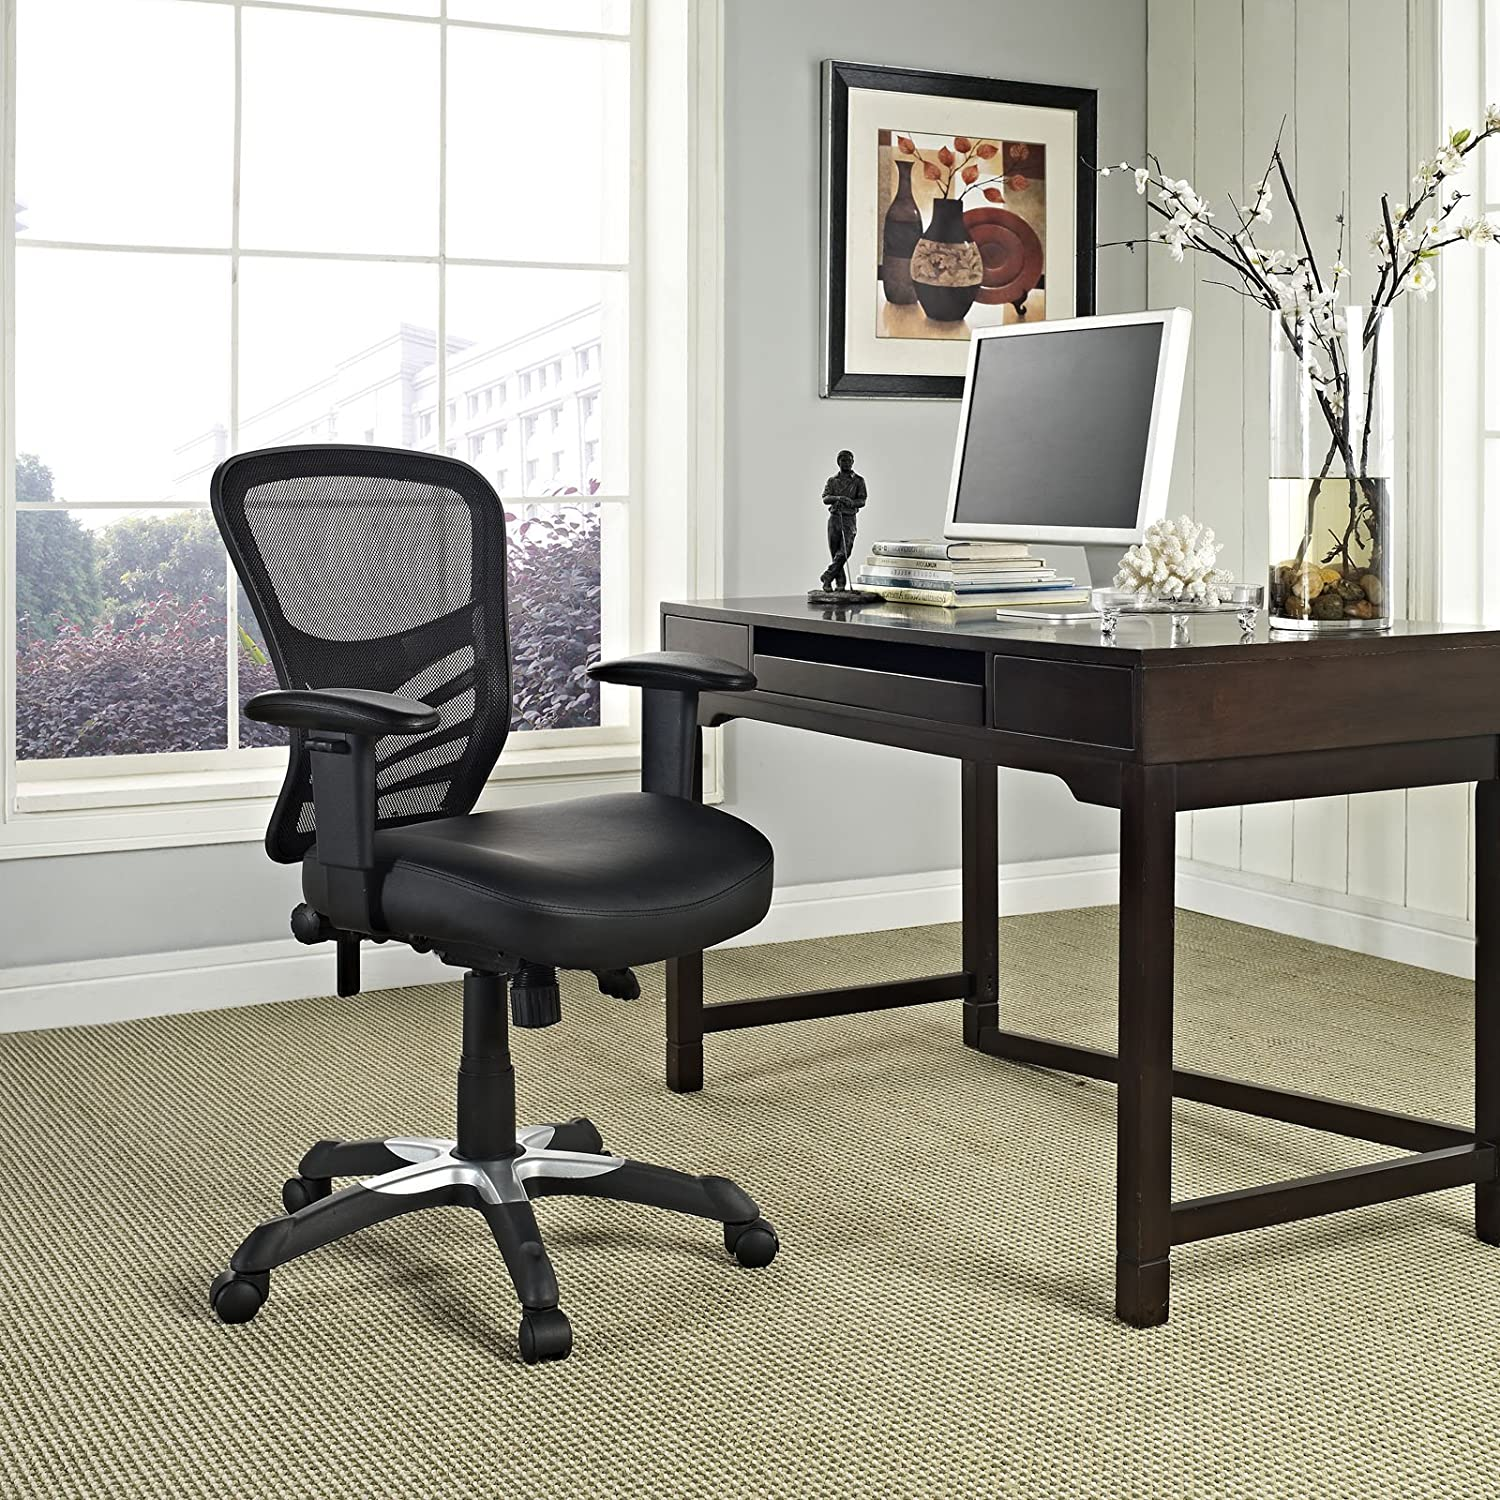 Simply owning an ergonomic chair is not enough if you don t know how - Amazon Com Modway Articulate Mesh Office Chair With Fully Adjustable Black Vinyl Seat Kitchen Dining